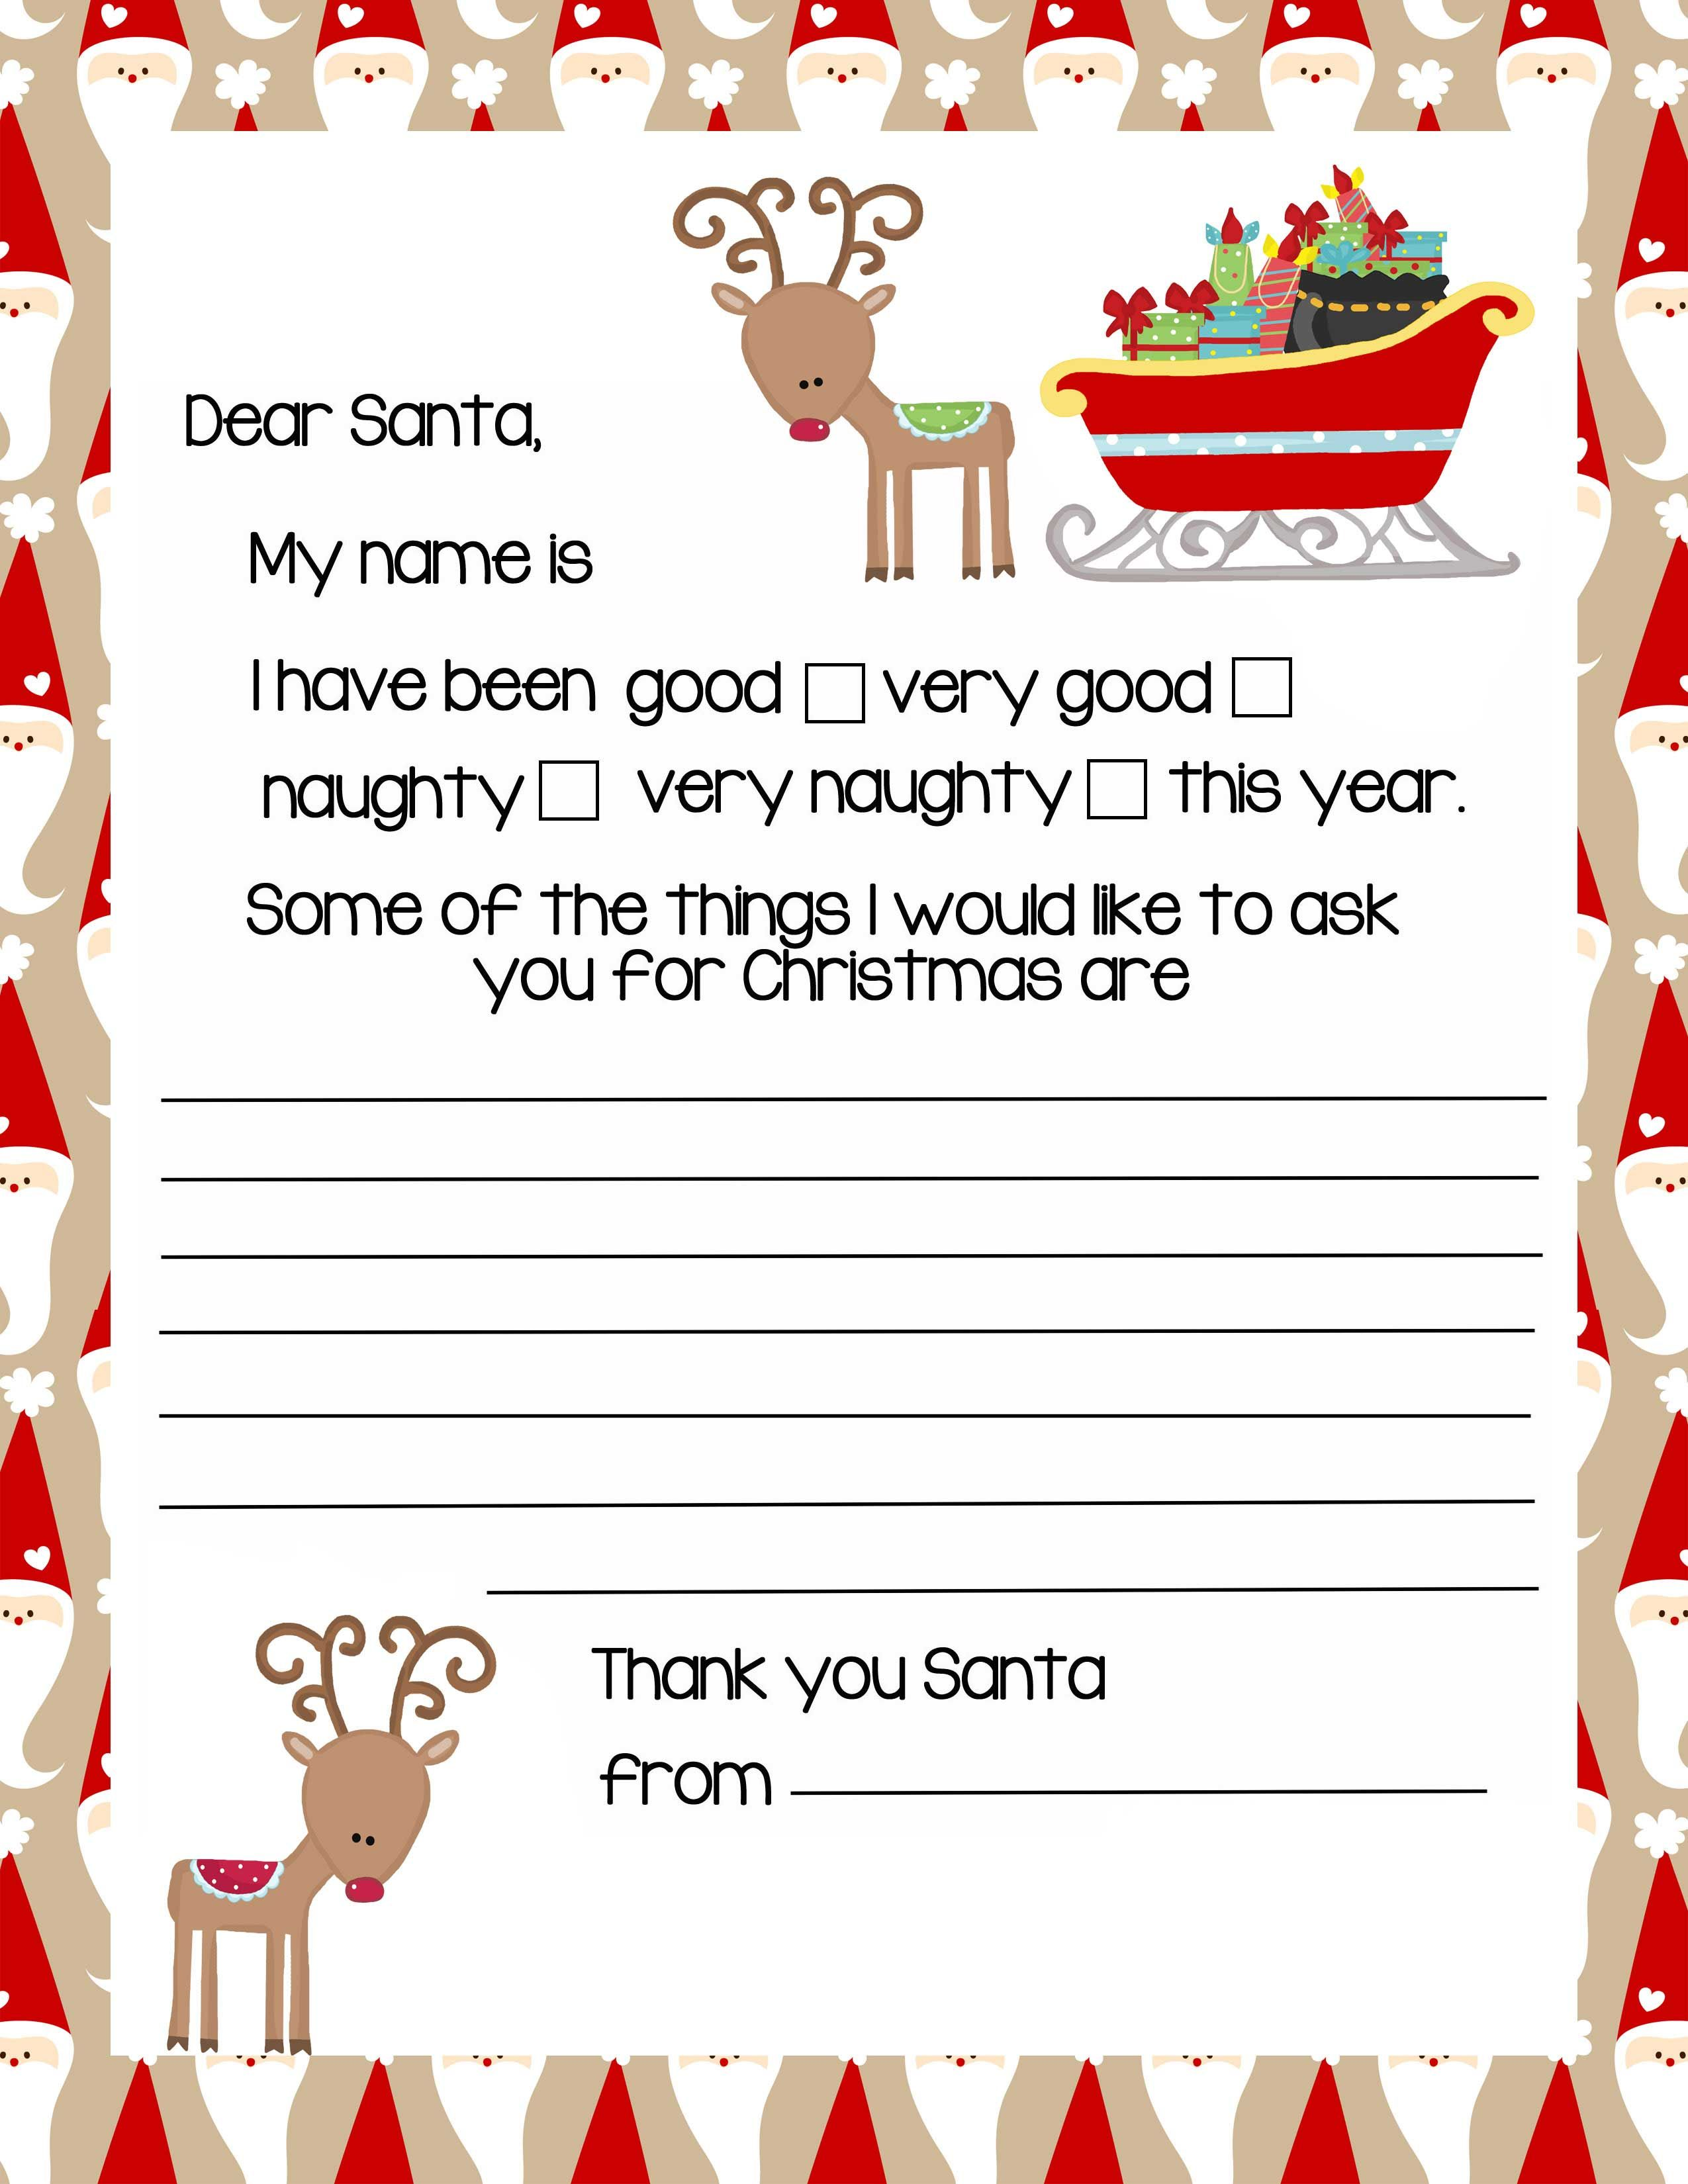 Reindeer Letter To Santa Claus Christmas Letter Template Santa Letter Template Santa Letter